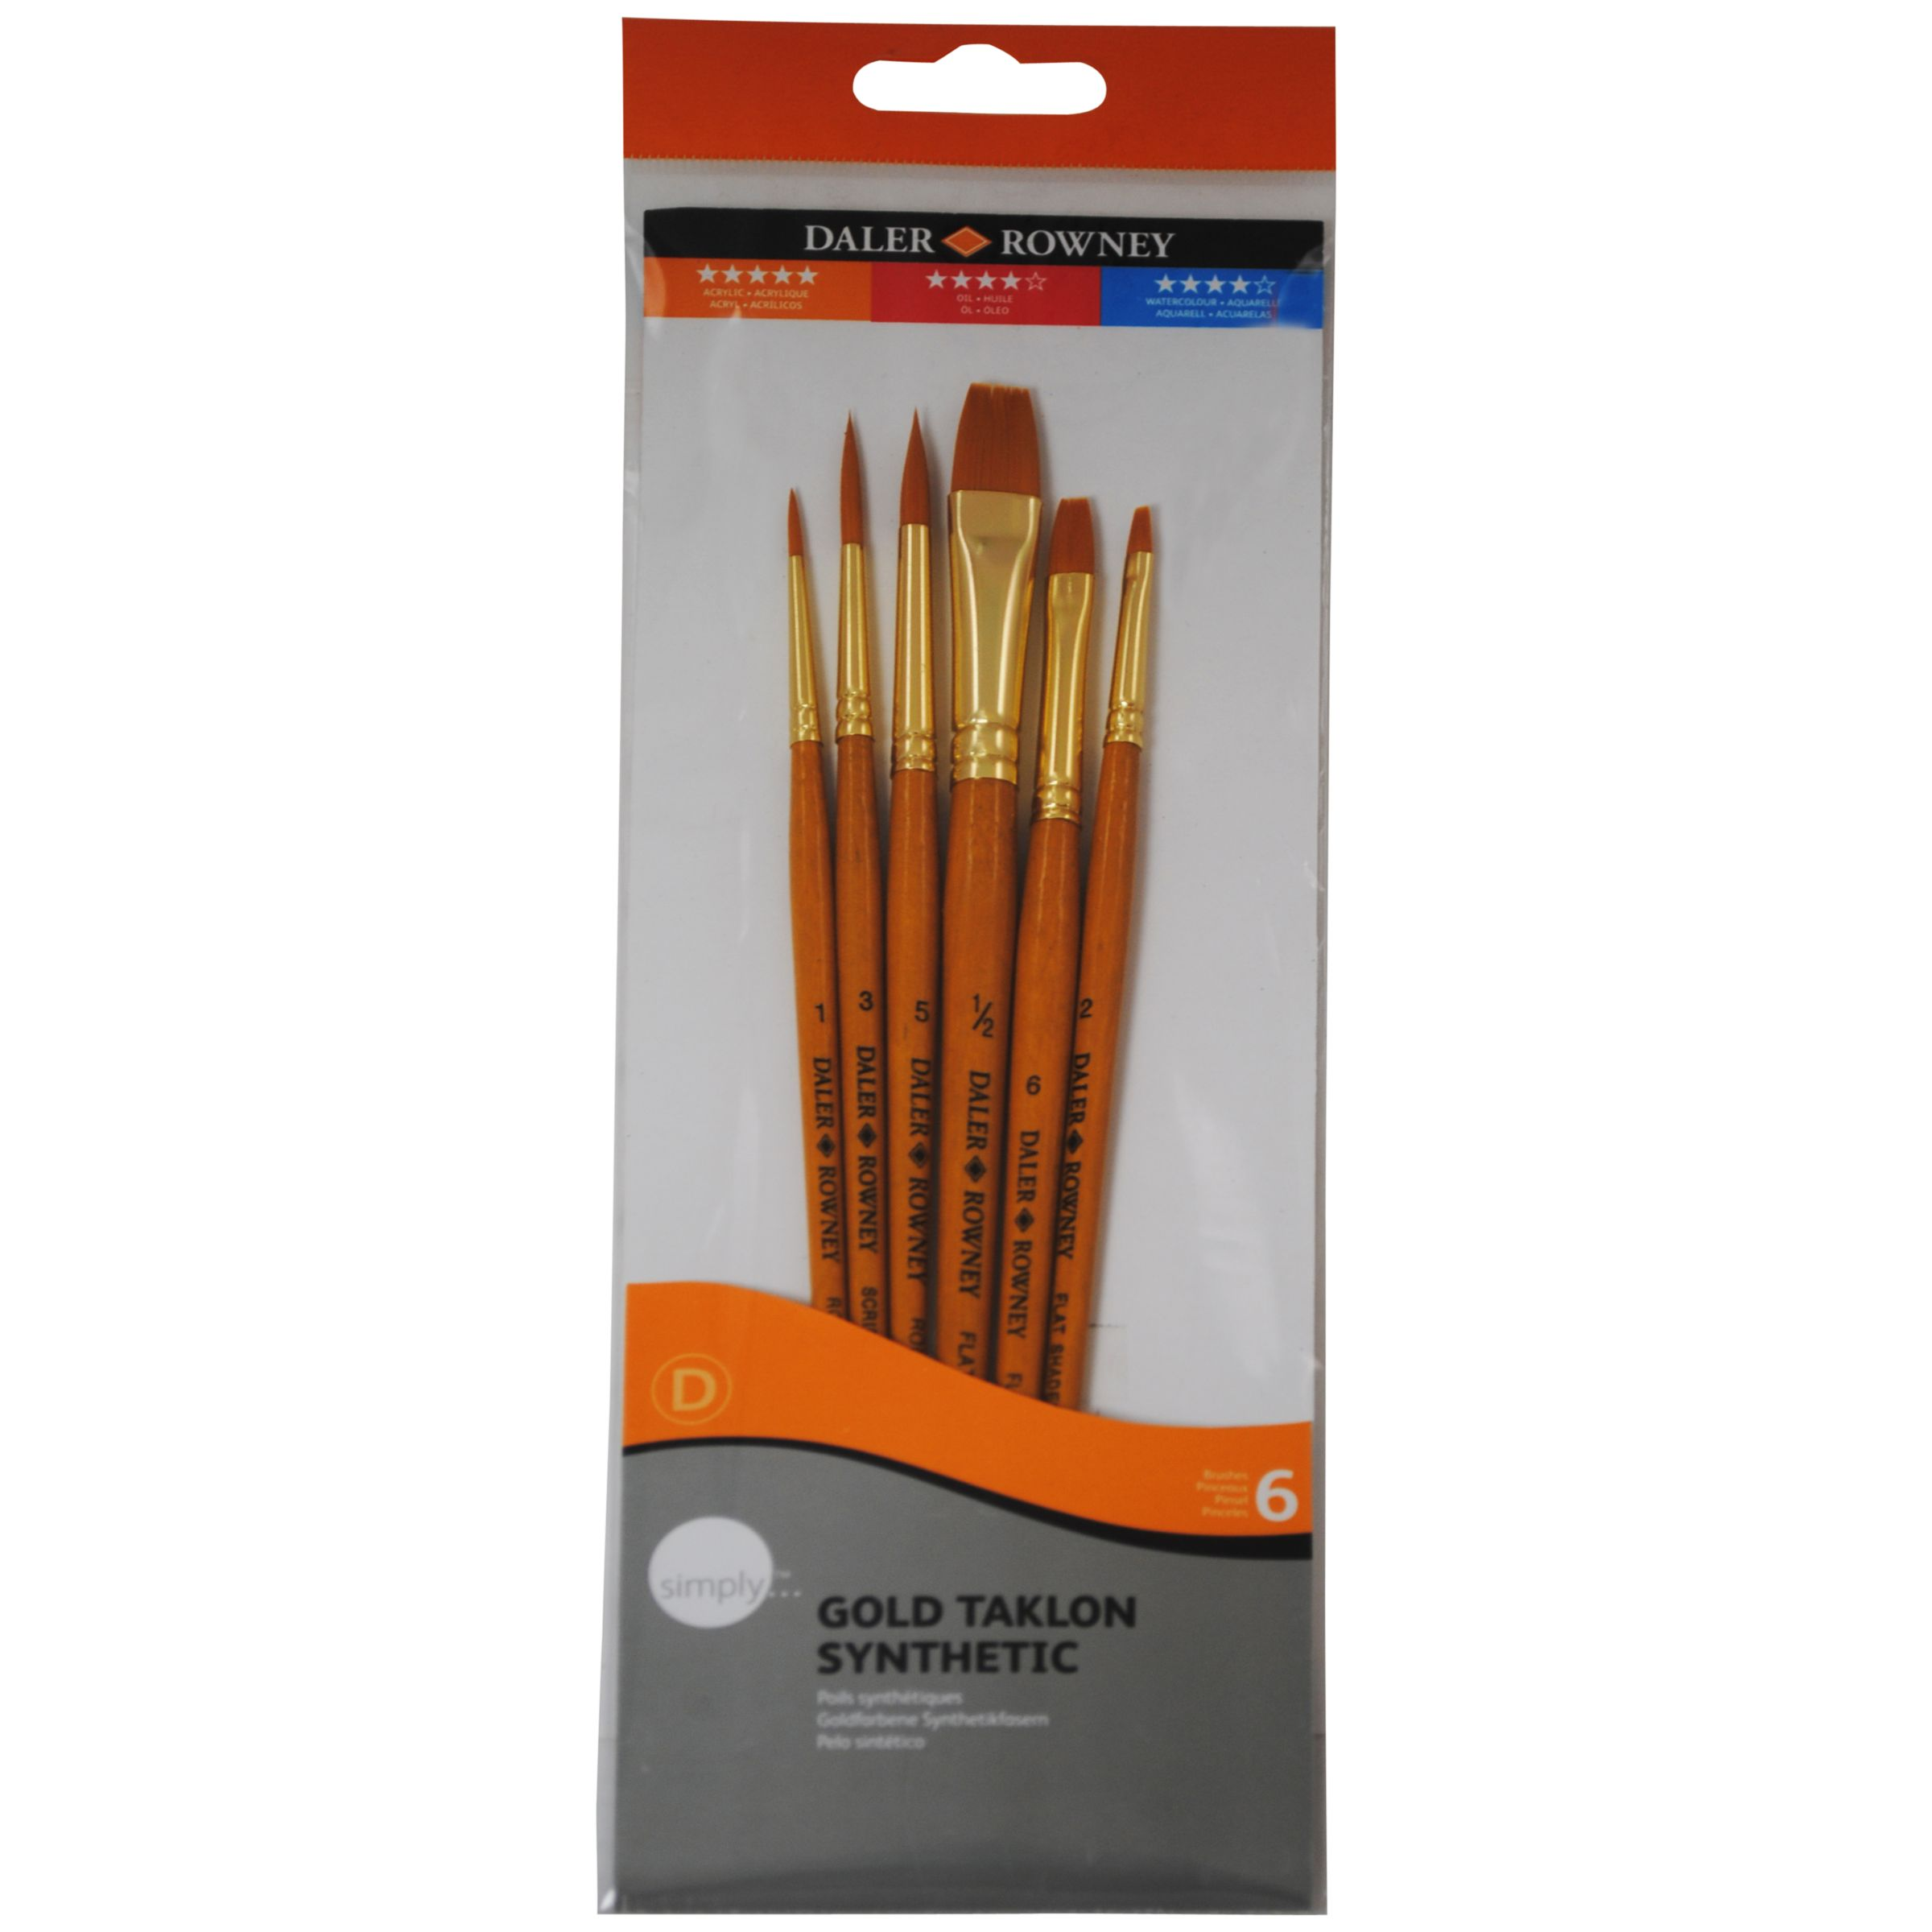 Daler-Rowney Gold Taklon Short Handled Brushes, Set of 6